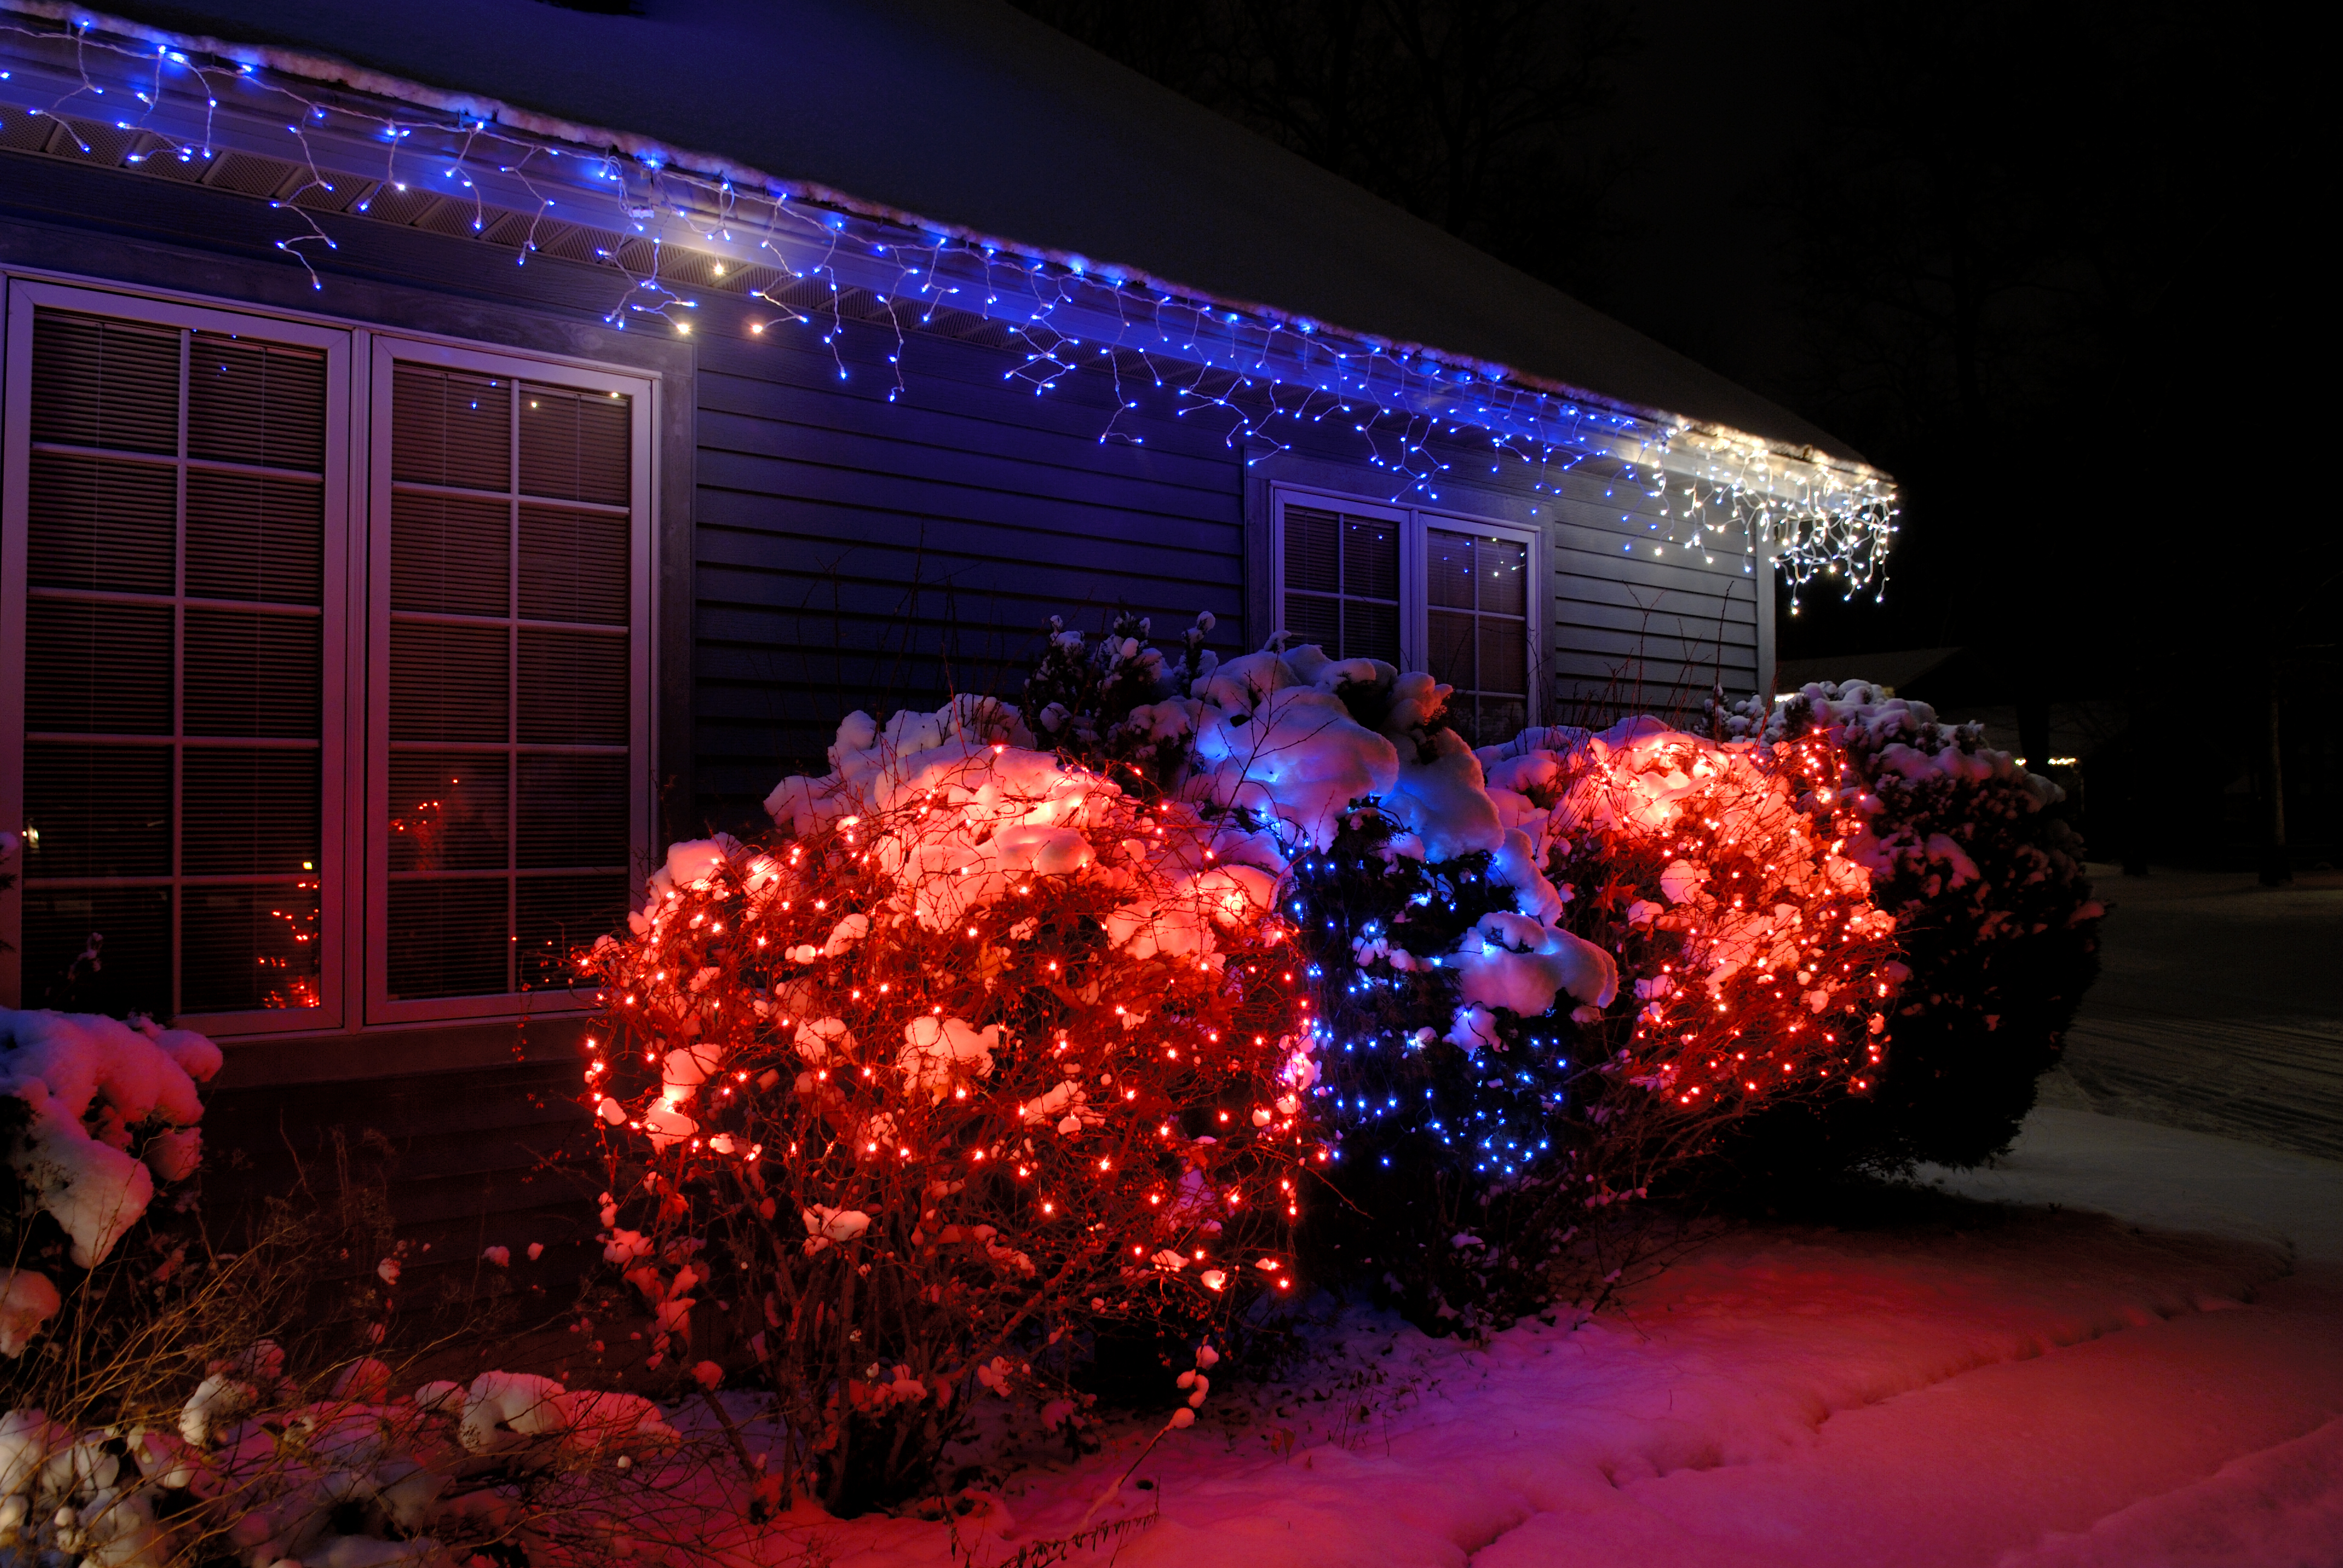 Tips For Decorating Bushes With Christmas Lights Home Guides Sf Gate